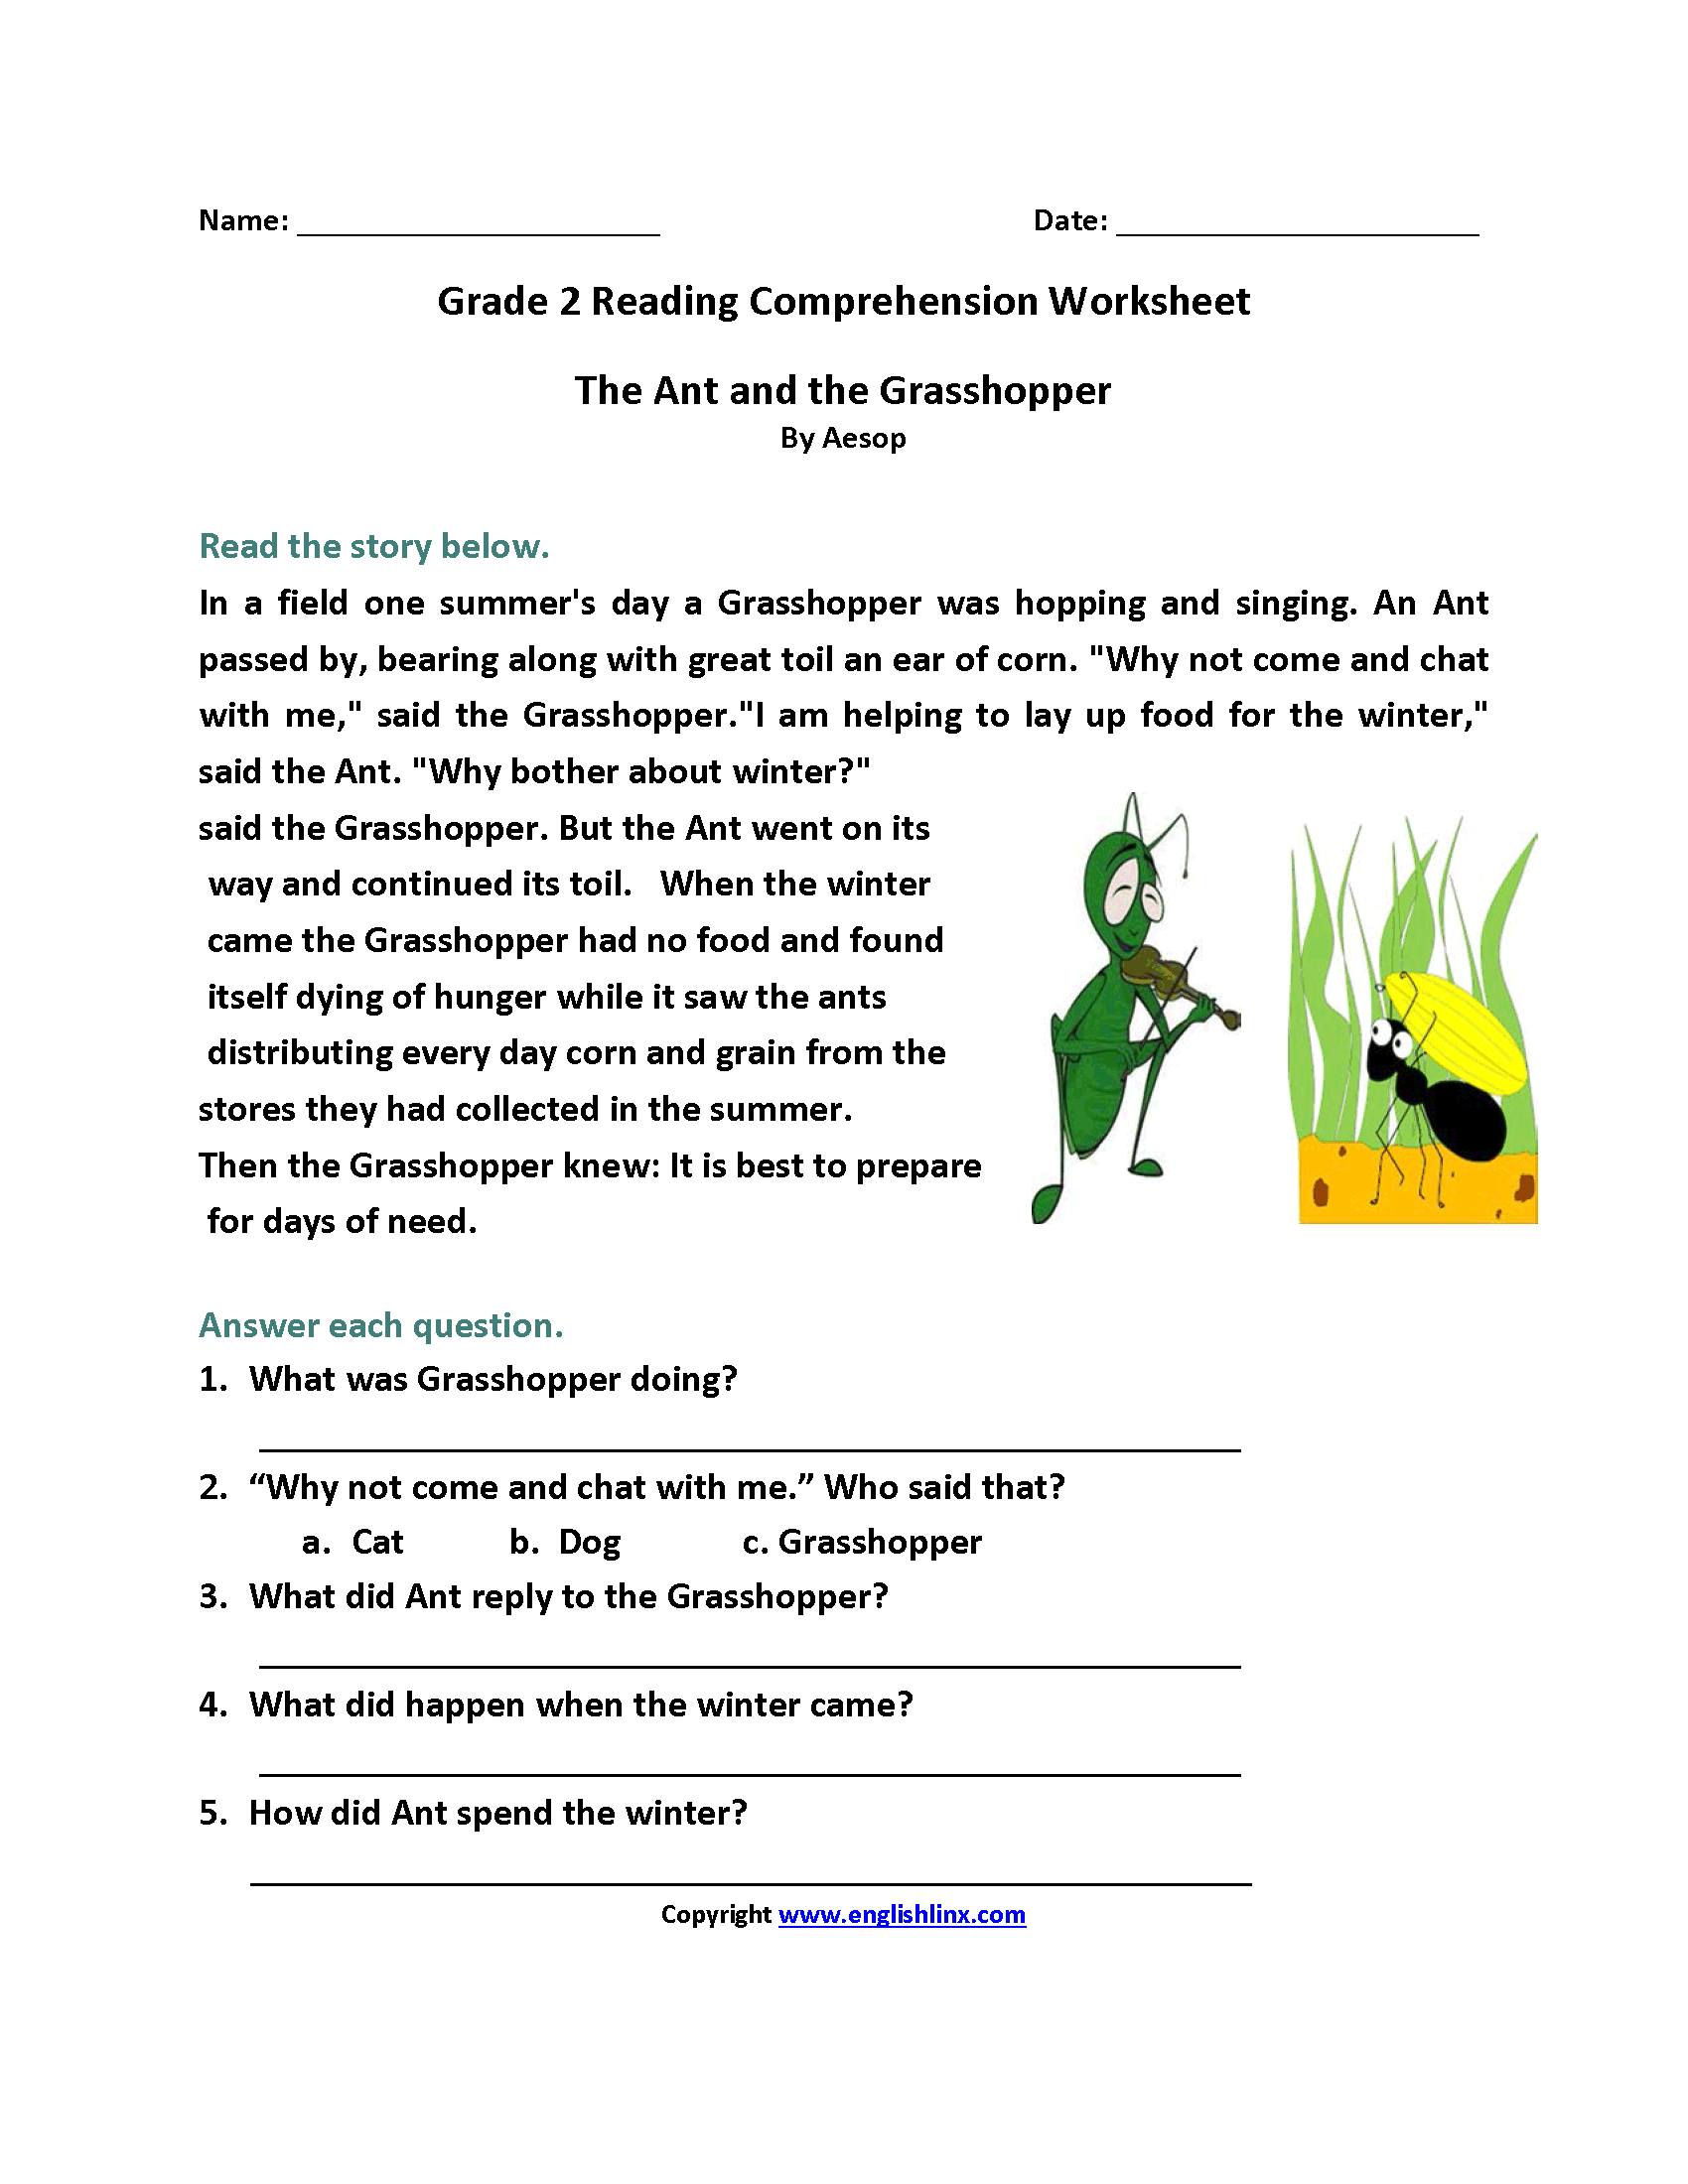 Reading Comprehension Worksheets For 2nd Grade